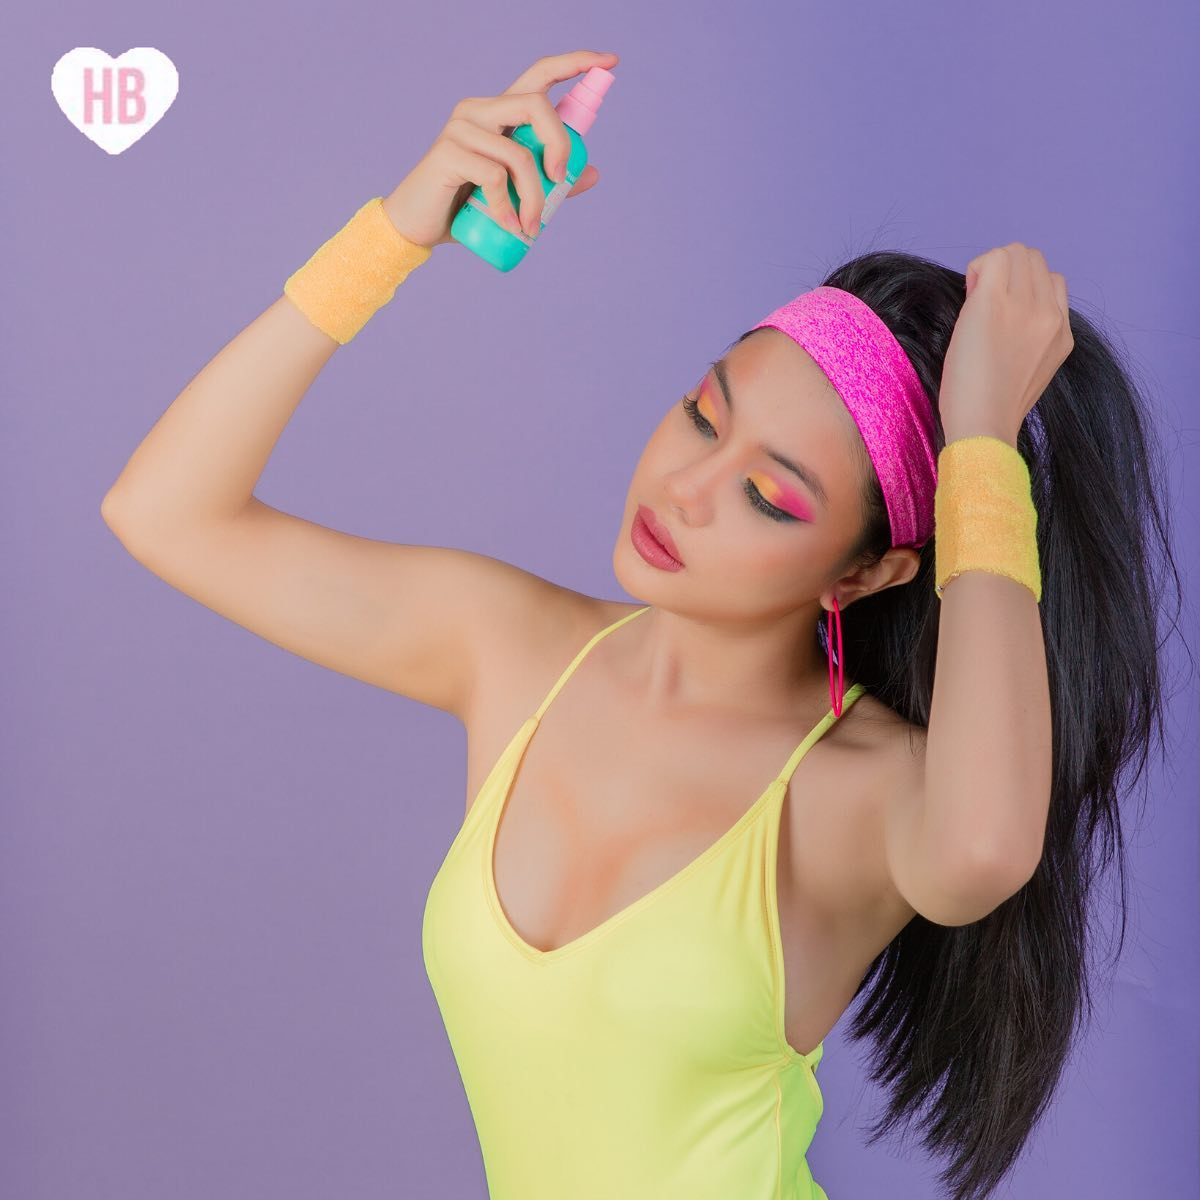 xit duong toc hairburst 3